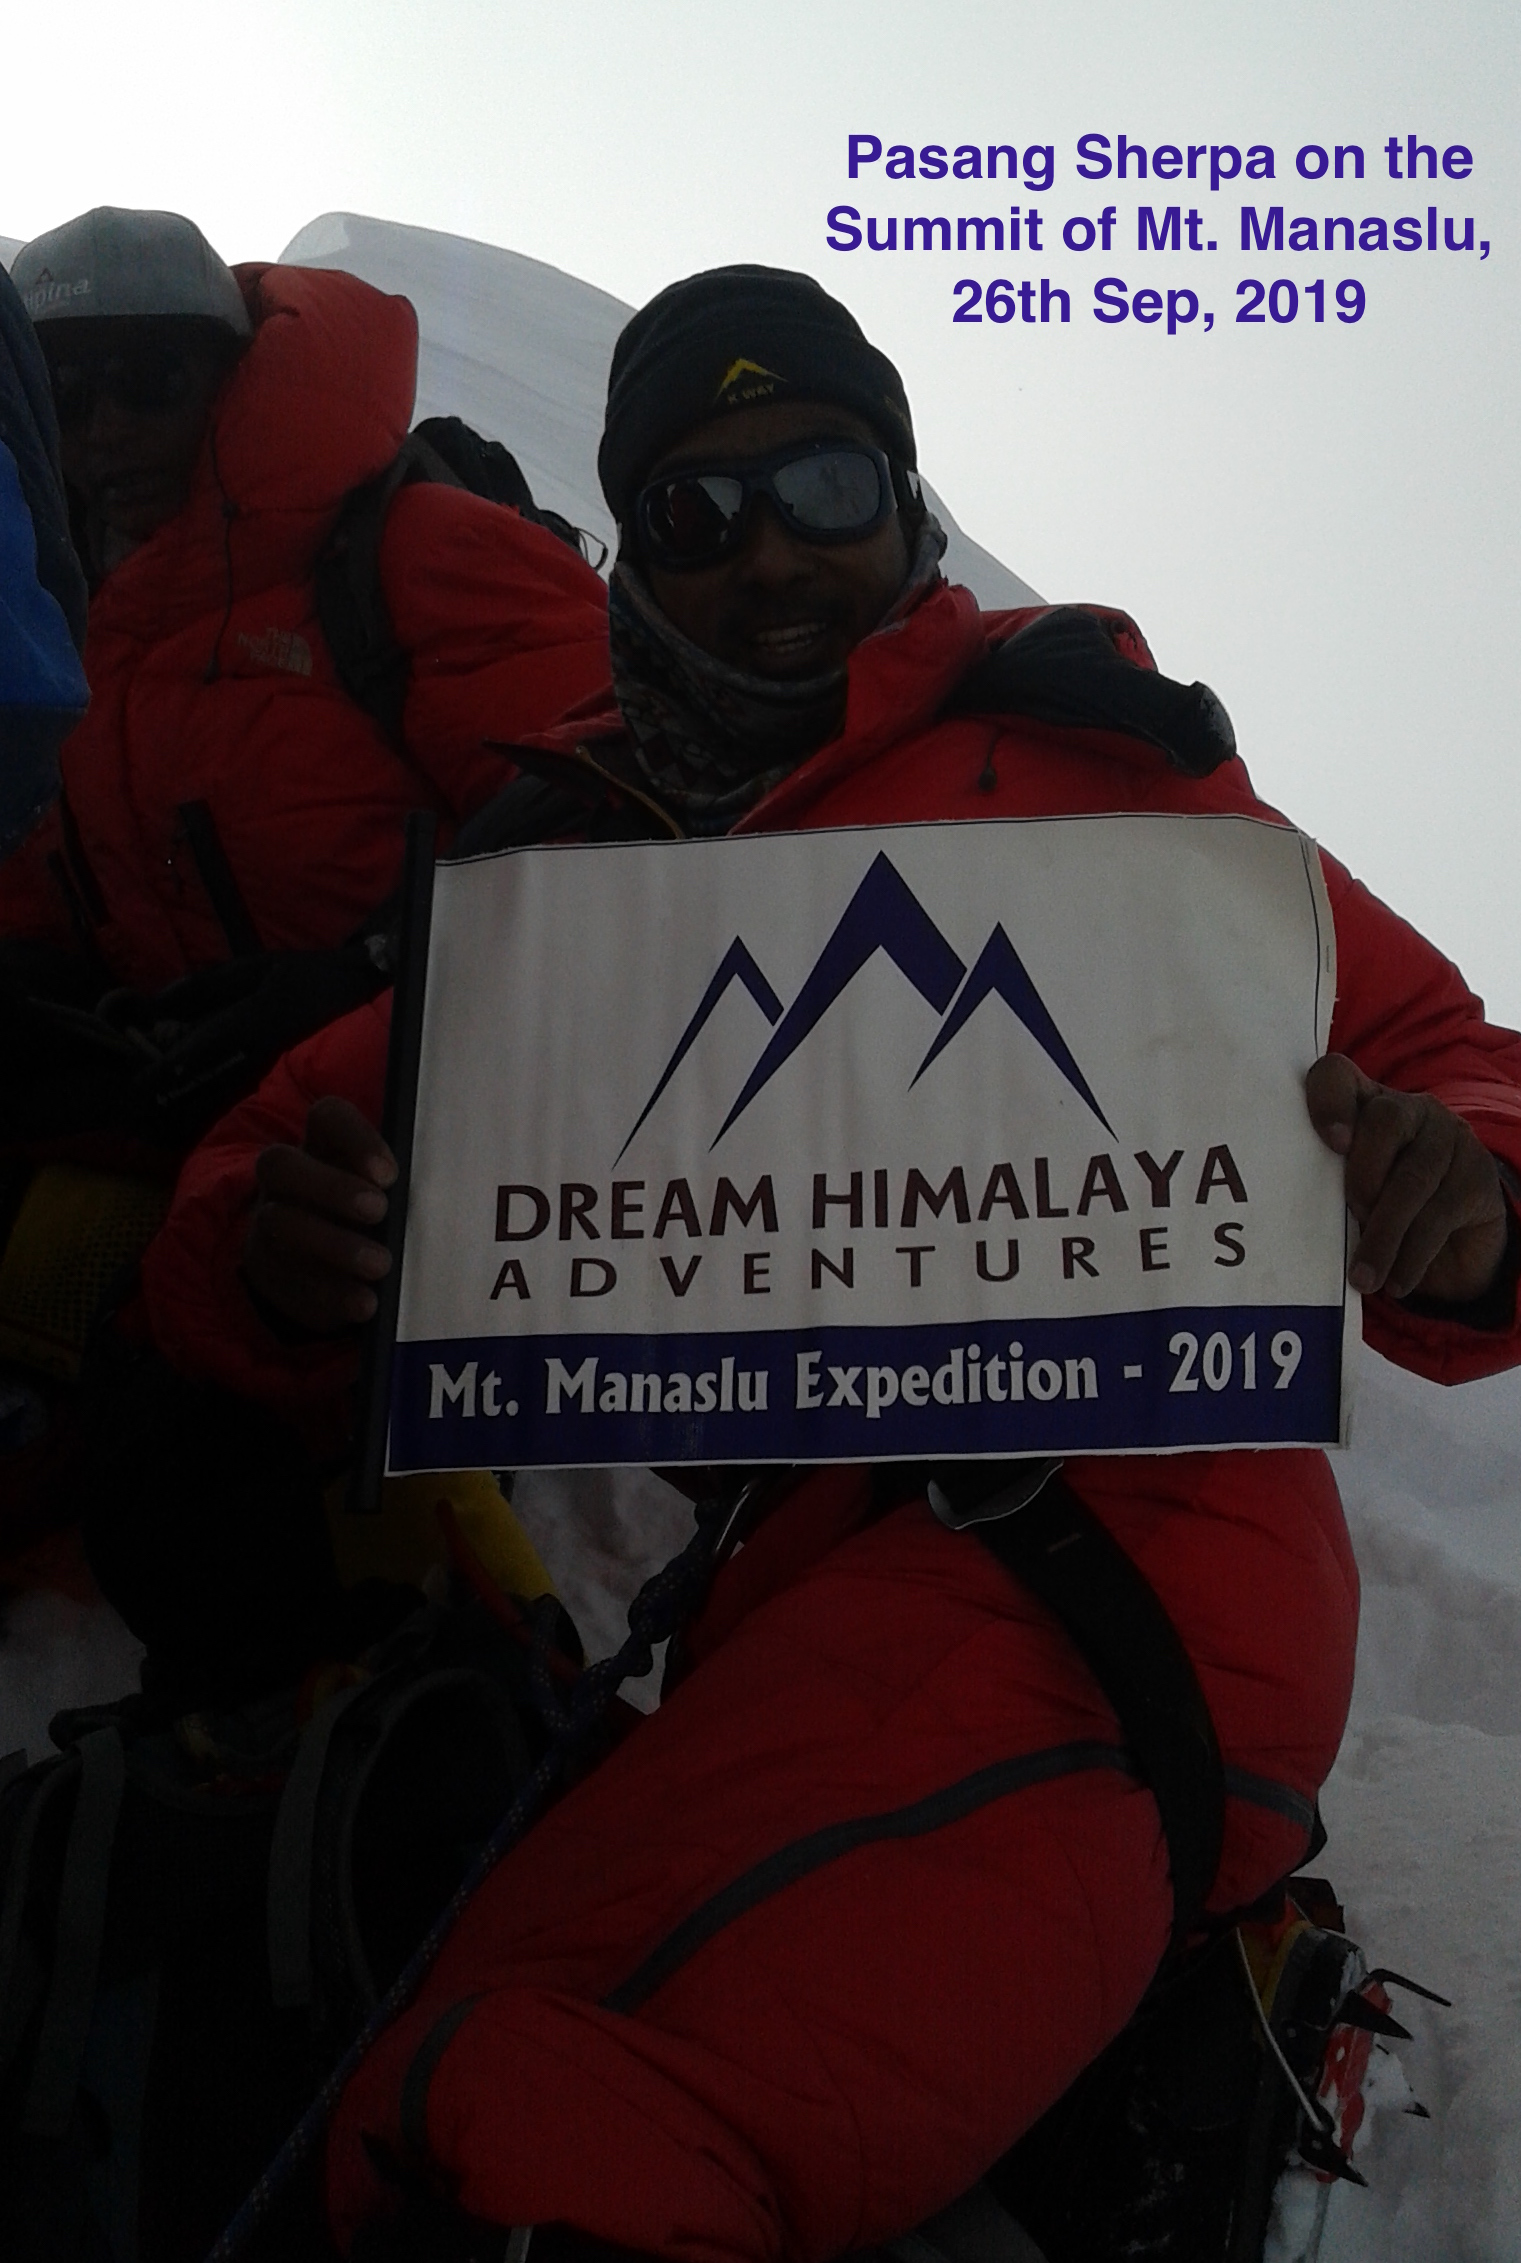 Pasang Sherpa on the summit of Mt Manaslu - 2019